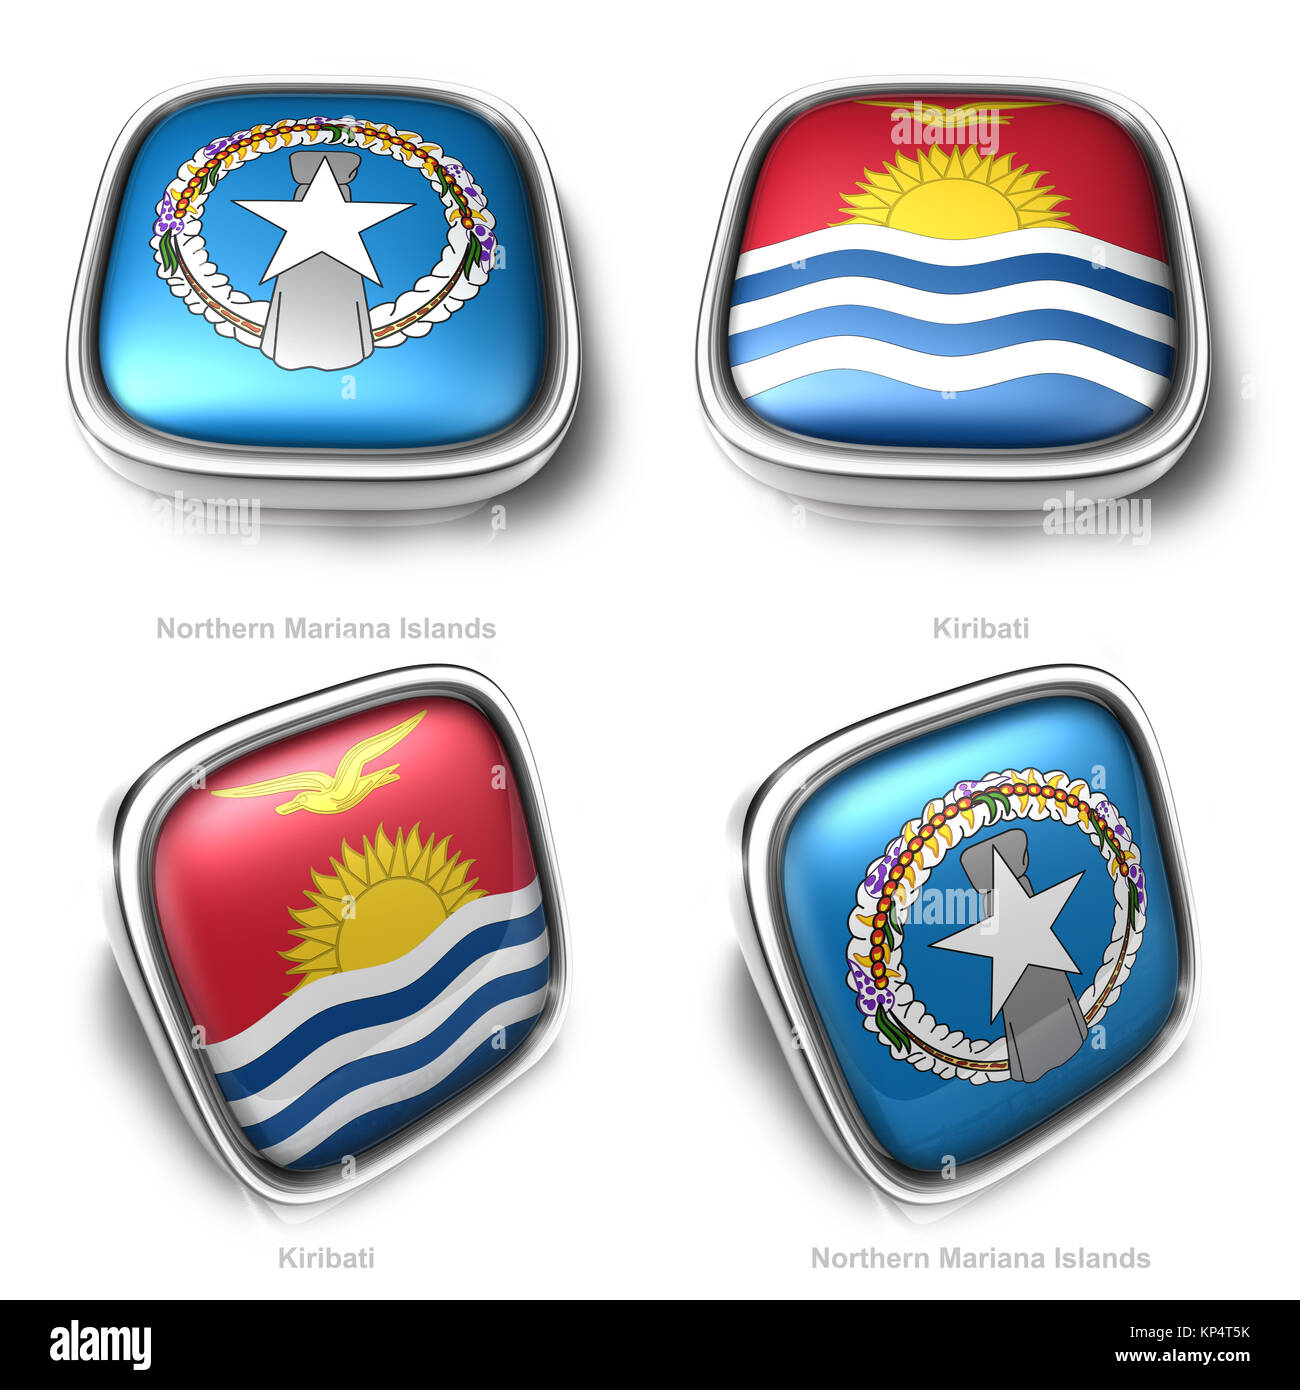 3d Northern Mariana Islands and Kiribati flag button - Stock Image